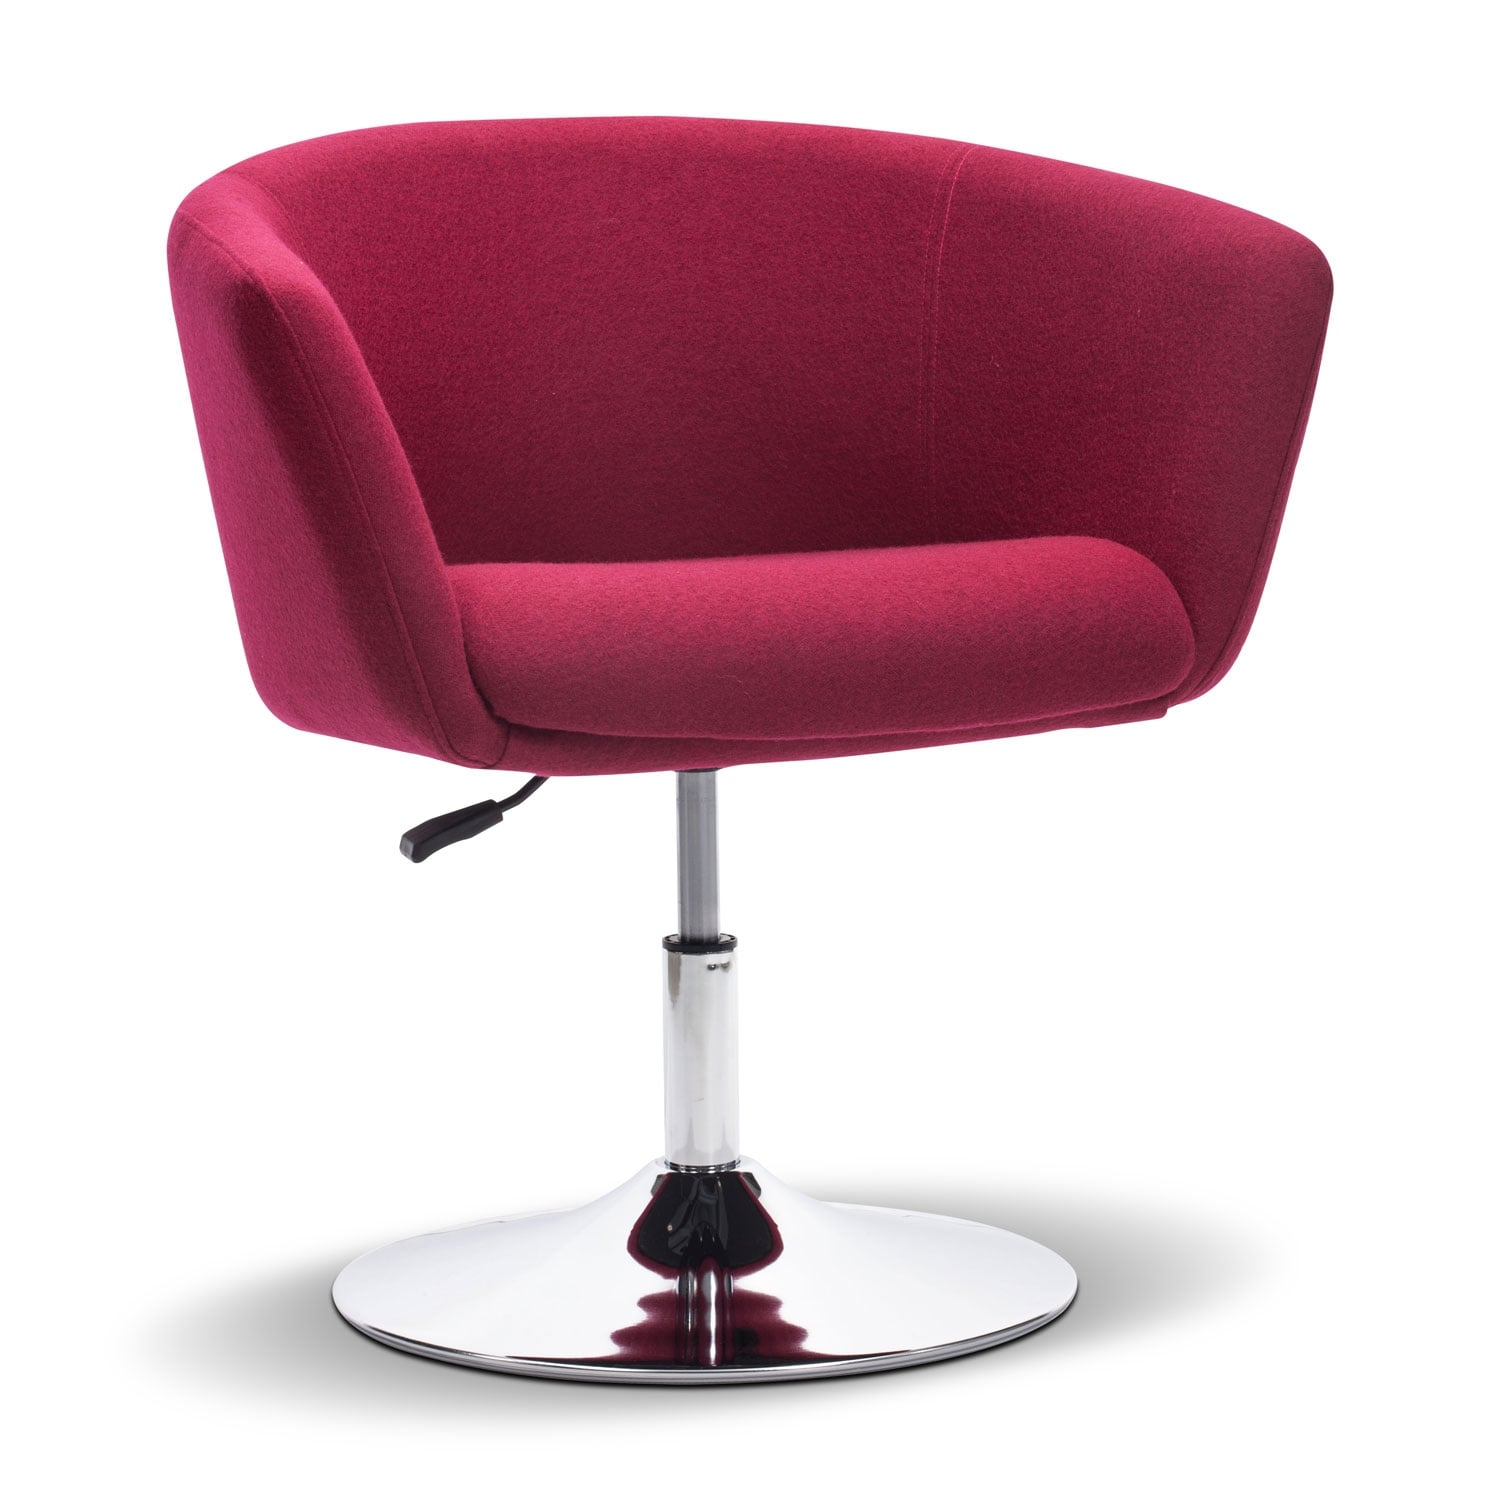 Marseille Accent Chair - Red